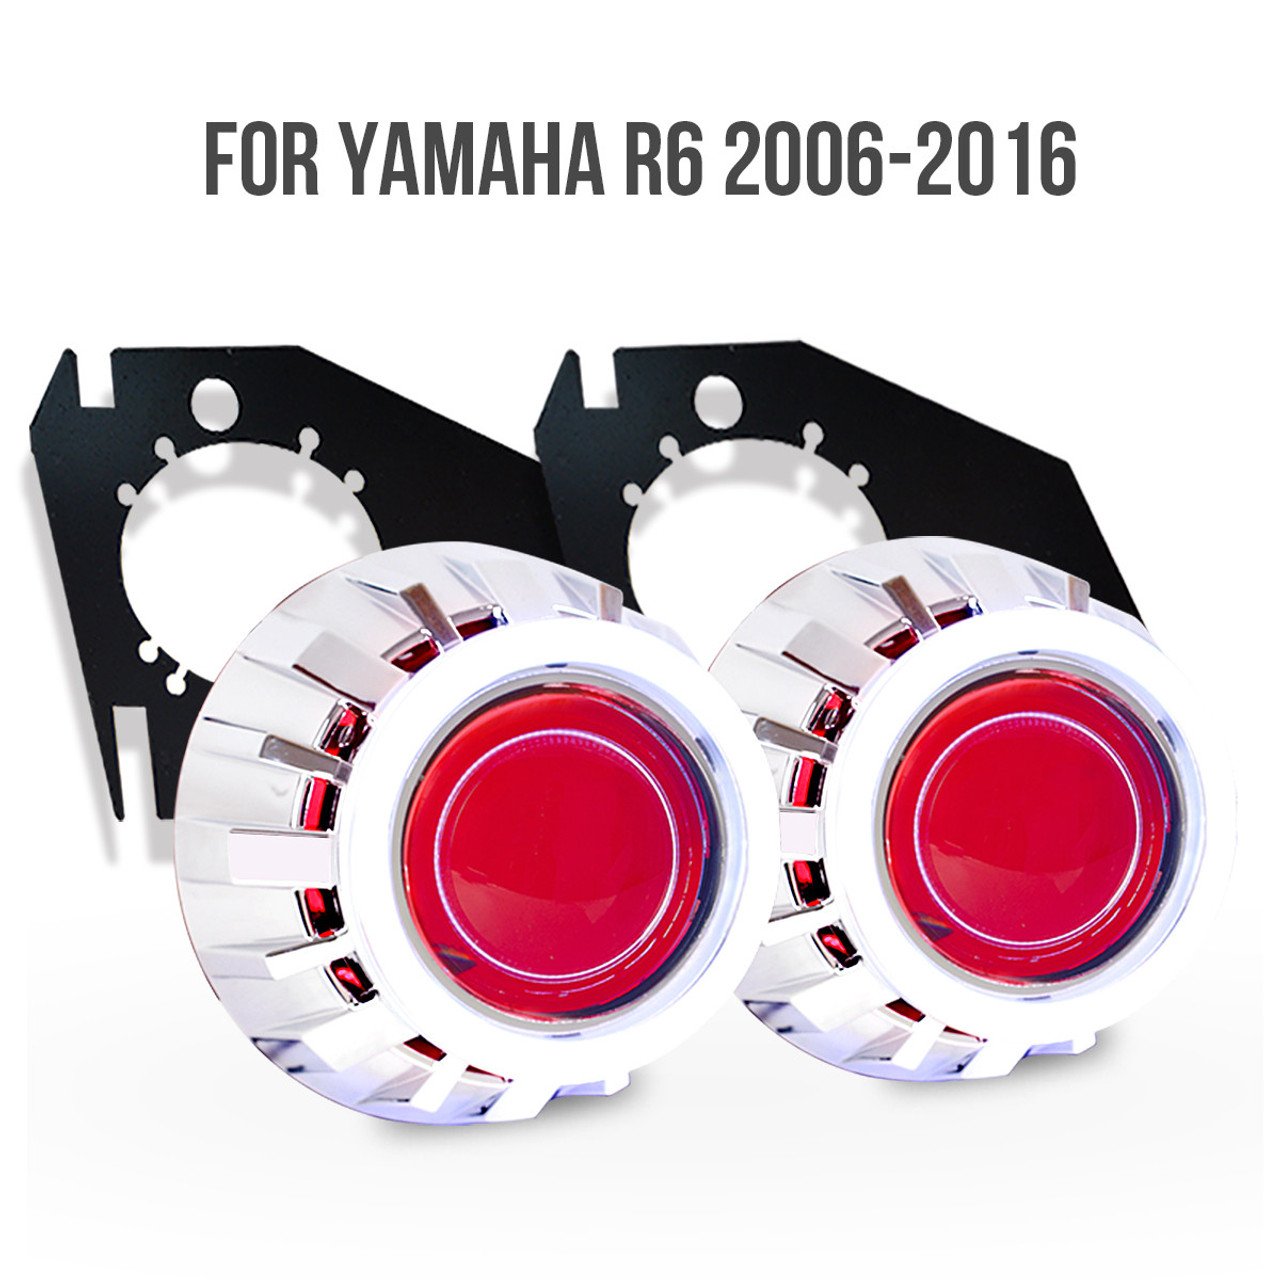 Yamaha R6 Hid Projector Kit 2008 2009 2010 2011 2012 2013 2014 2015 2016 R6s Wiring Diagram 2006 2007